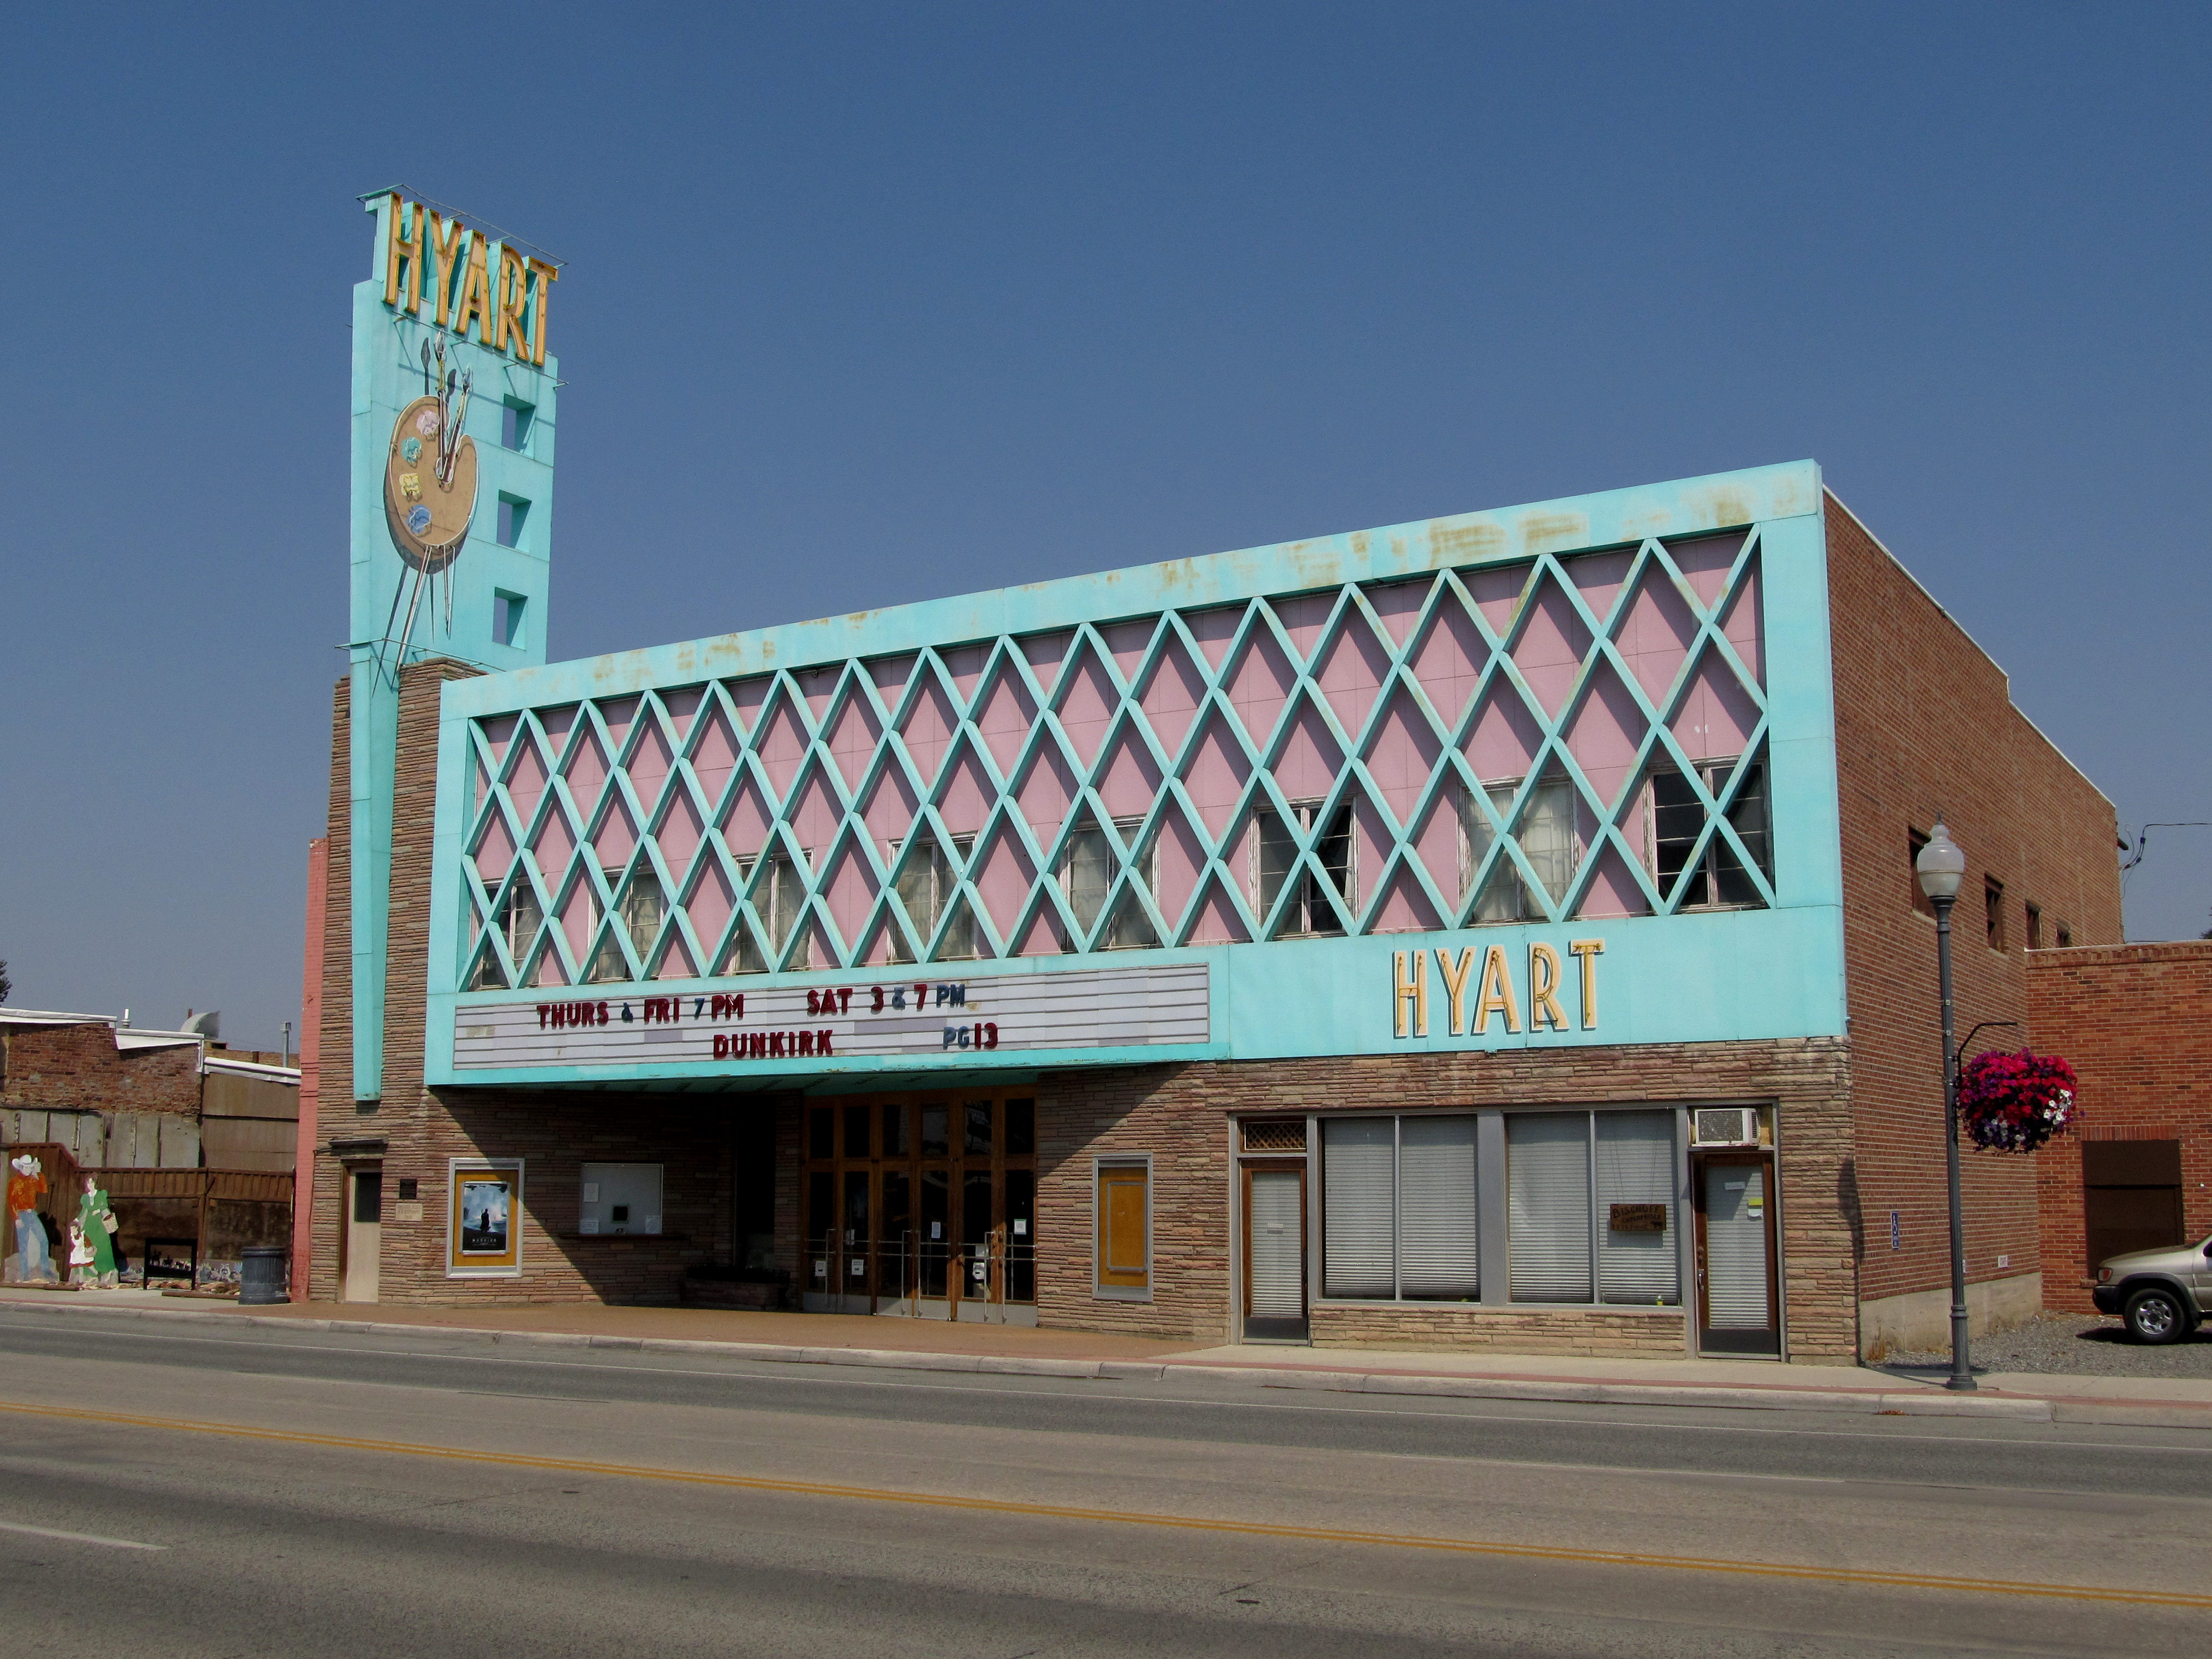 Hyart Theatre - 251 East Main Street, Lovell, Wyoming U.S.A. - August 28, 2017